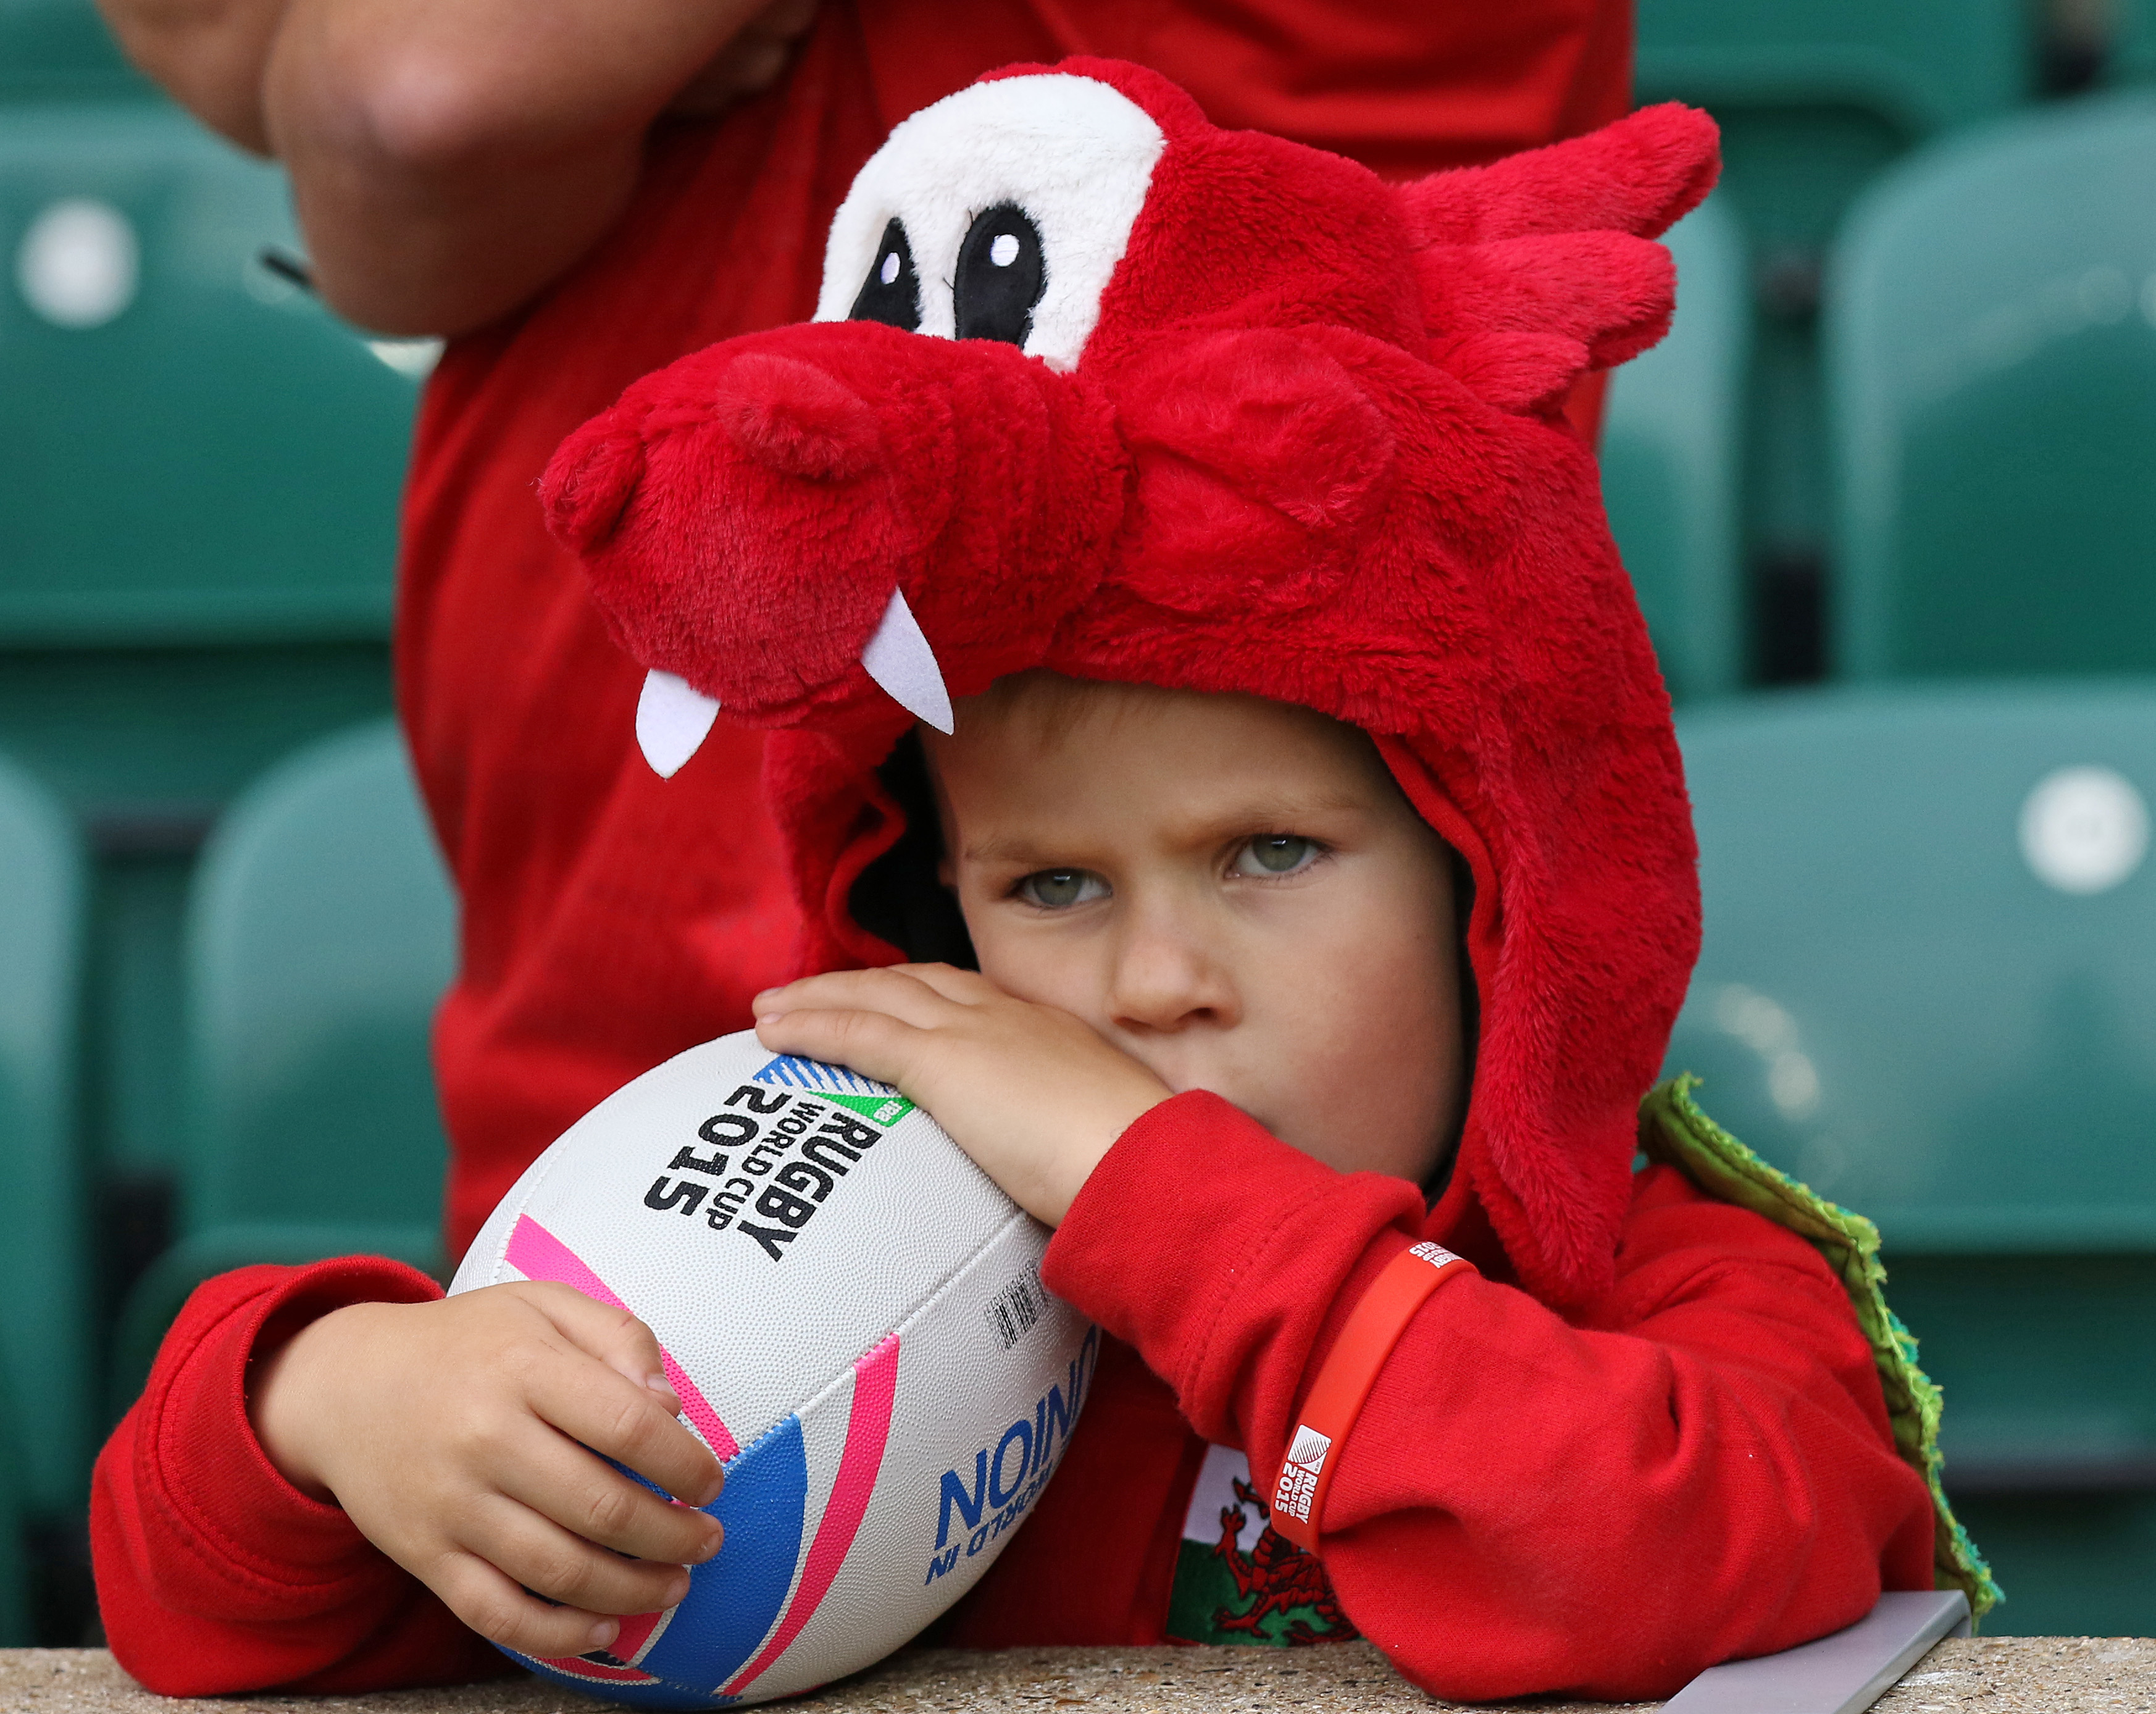 5 Rugby Kids That Are As Cute AF